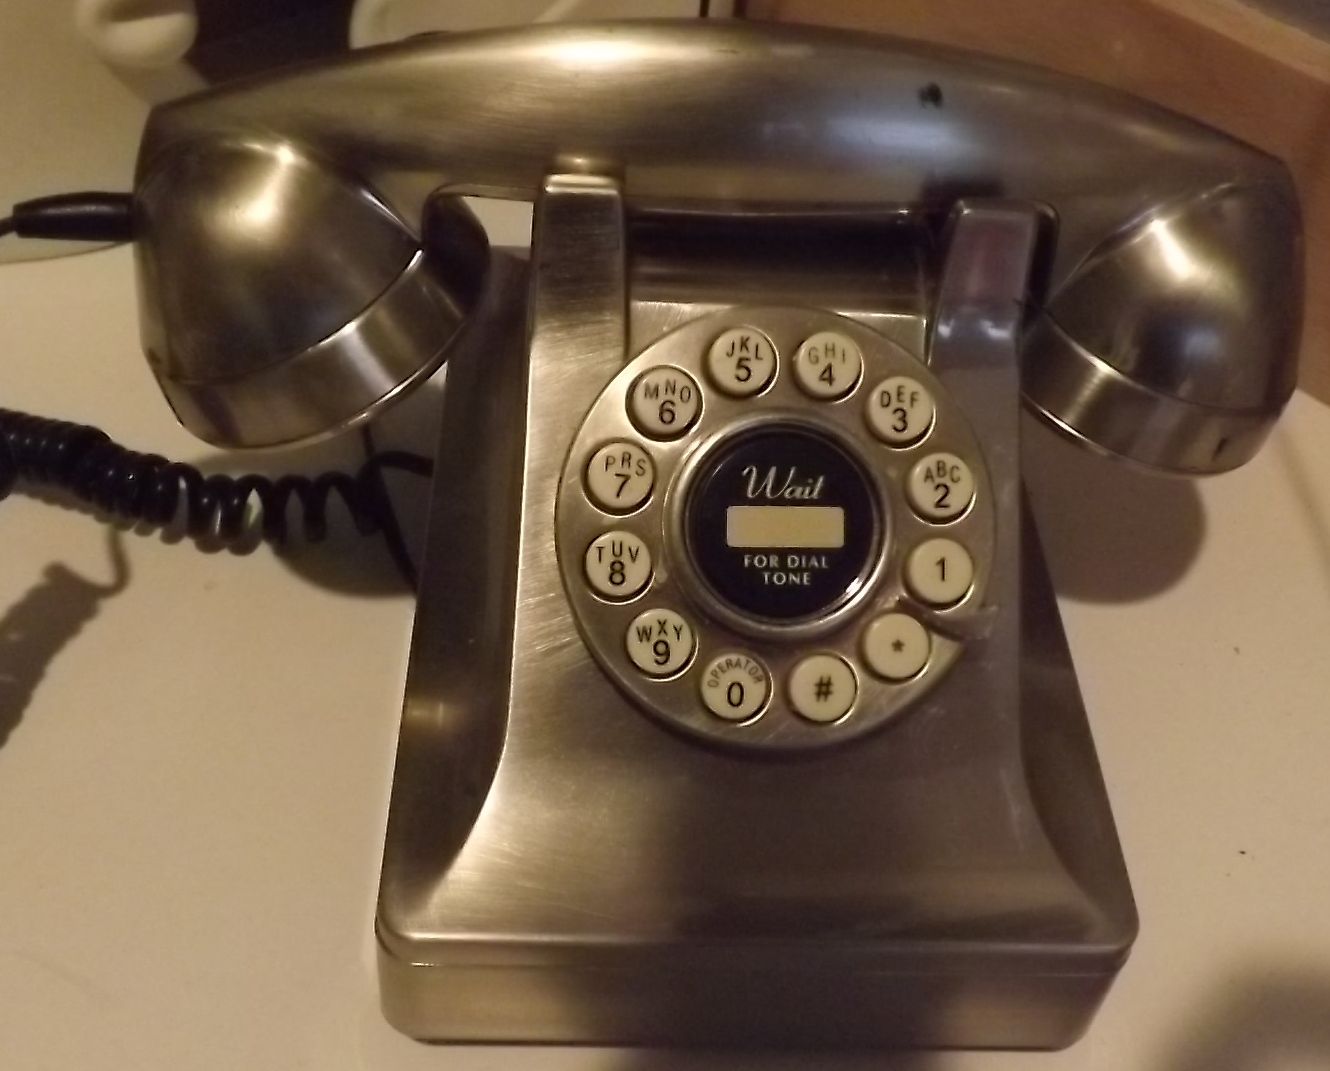 Stainless Steel Old Fashioned Desk Telephone